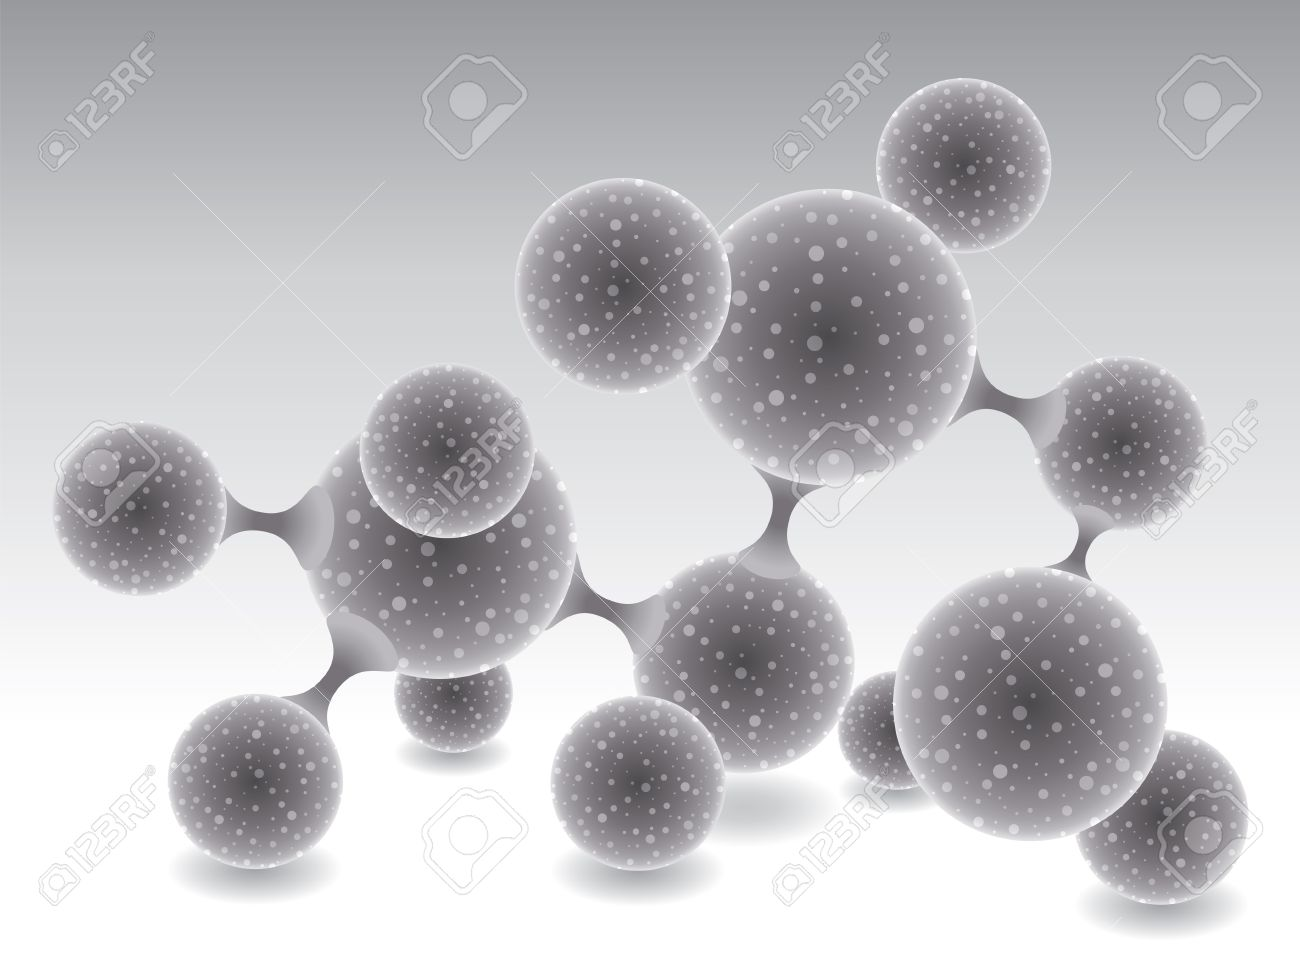 vector abstract molecule or microbe background Stock Vector - 11162040